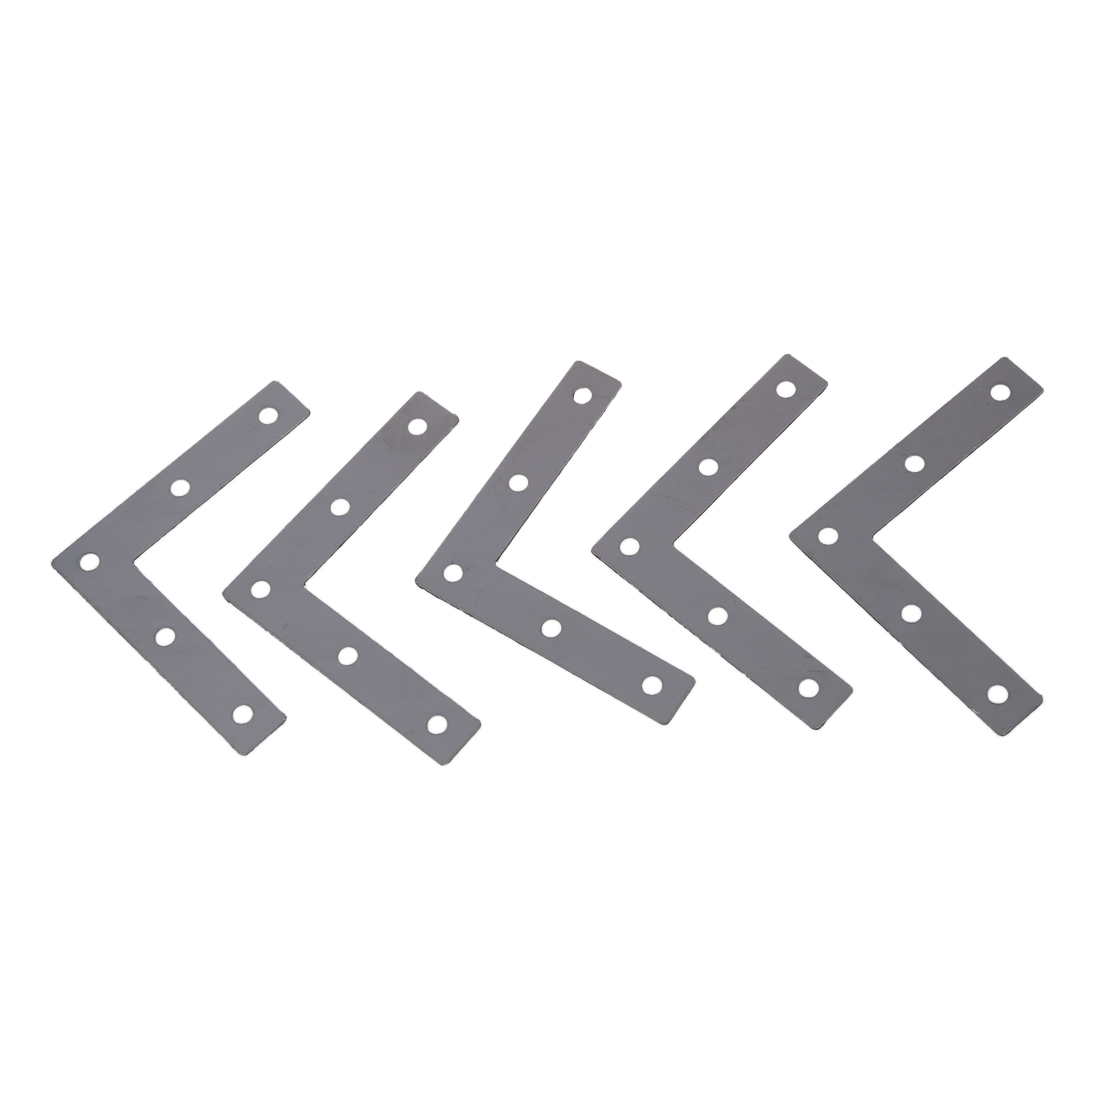 Angle Plate Corner Brace Flat L Shape Repair Bracket 80mm x 80mm 10pcs lot stainless steel flat corner brace fixed angle plate connector repair bracket 38mm 15 6mm thickness 1 73mm k160